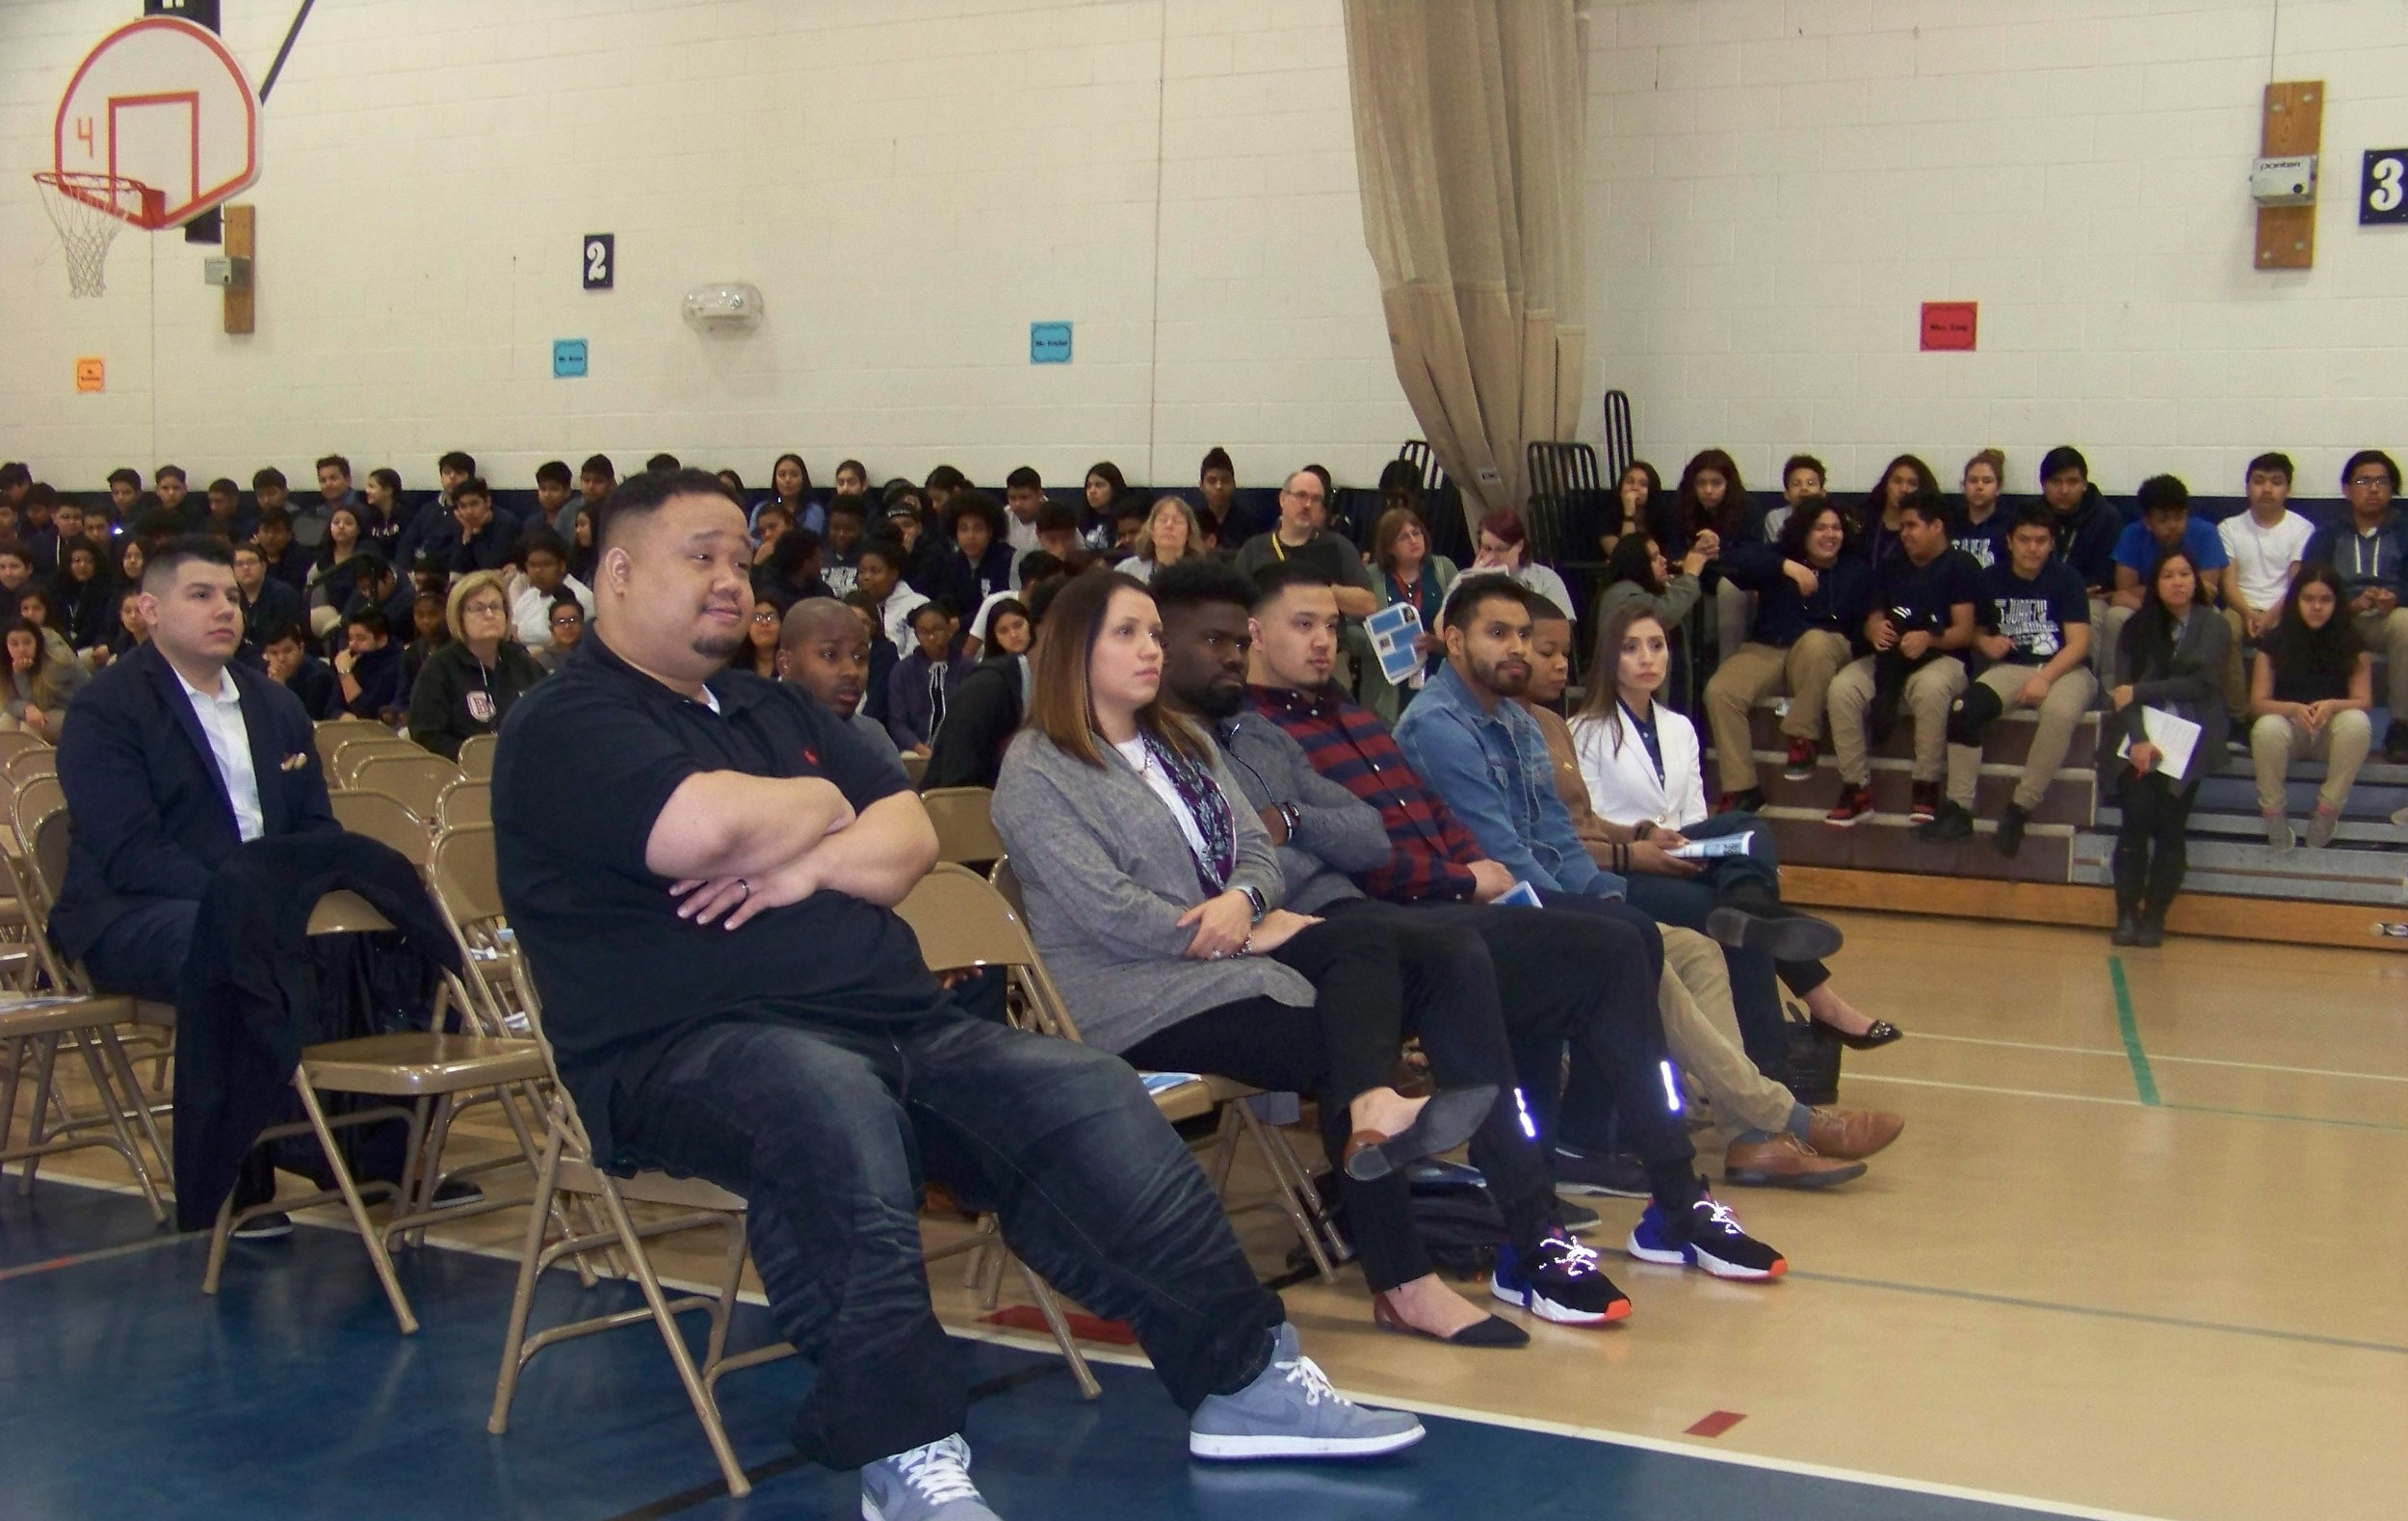 Waukegan, IL - (Miguel Juarez Middle School's Inaugural Beyond These Walls Career Day Event)200+ 8th Grade Students, 12 Young Professional Alumni, in addition to 15+ School Staff, Engaged in a Keynote Address Emphasizing The Significance of Social Entrepreneurship, Innovation, Leadership and Community.